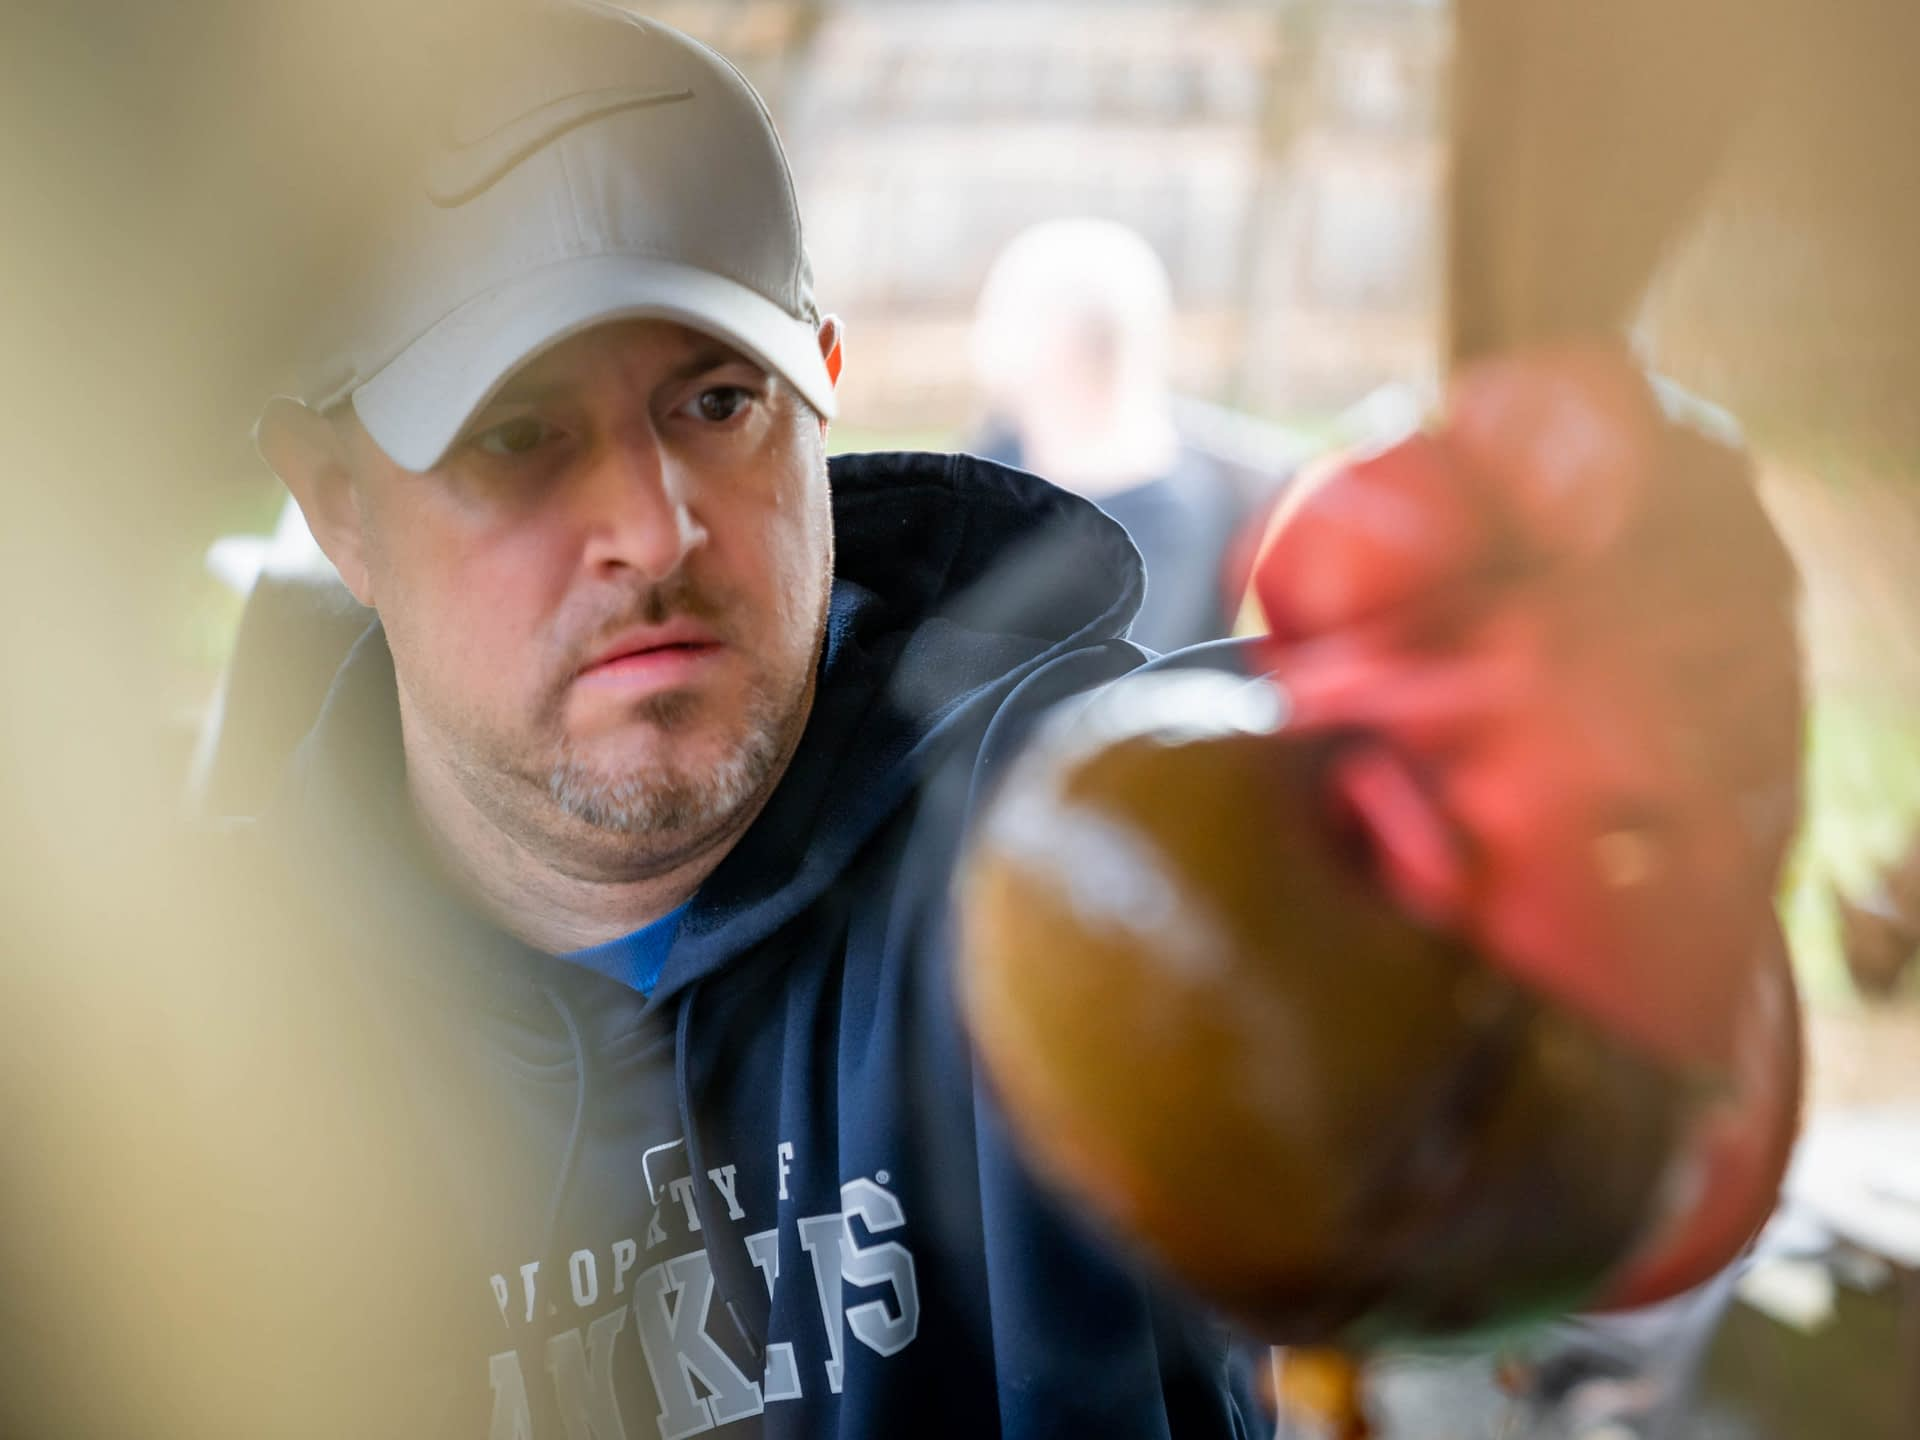 MJS Live Produces Website Header Video for Wicked Ways Brewing Co.